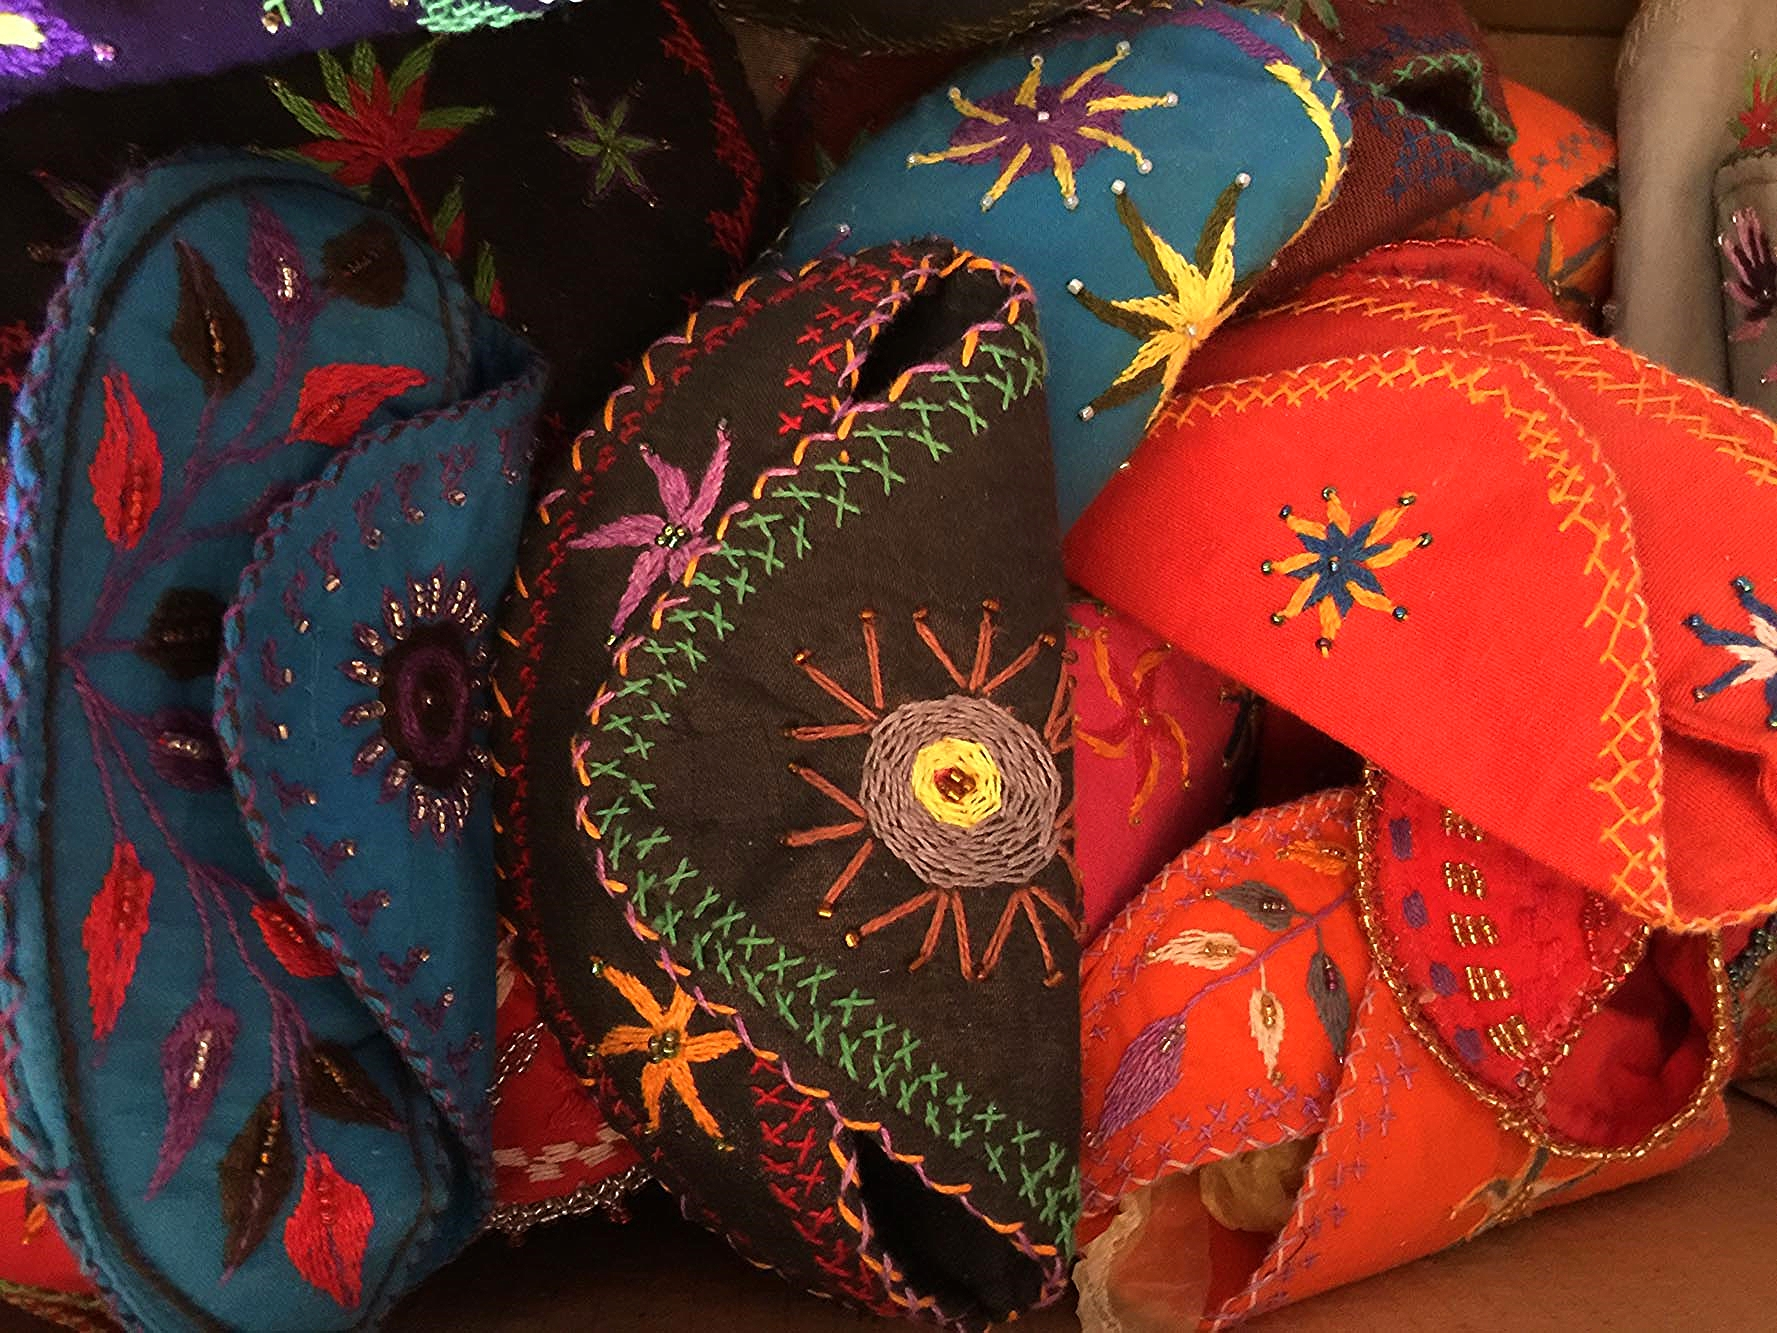 Bedouin embroidered spectacle cases